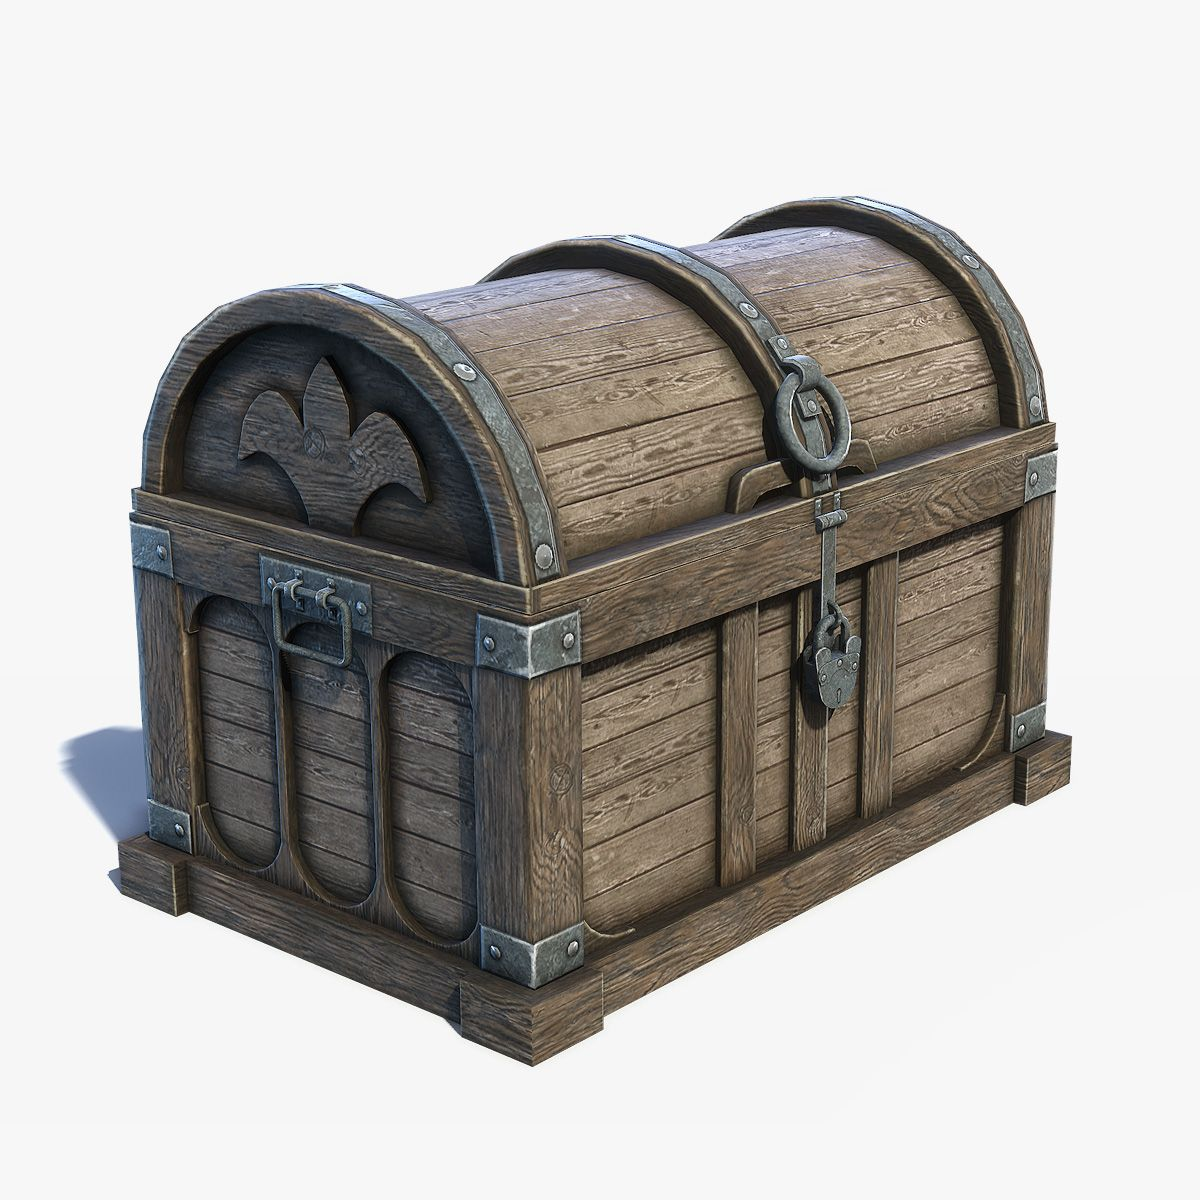 Game Low Poly 3d Model Of Old Medieval Wooden Chest Box Old Wooden Boxes Fantasy Furniture Wooden Chest